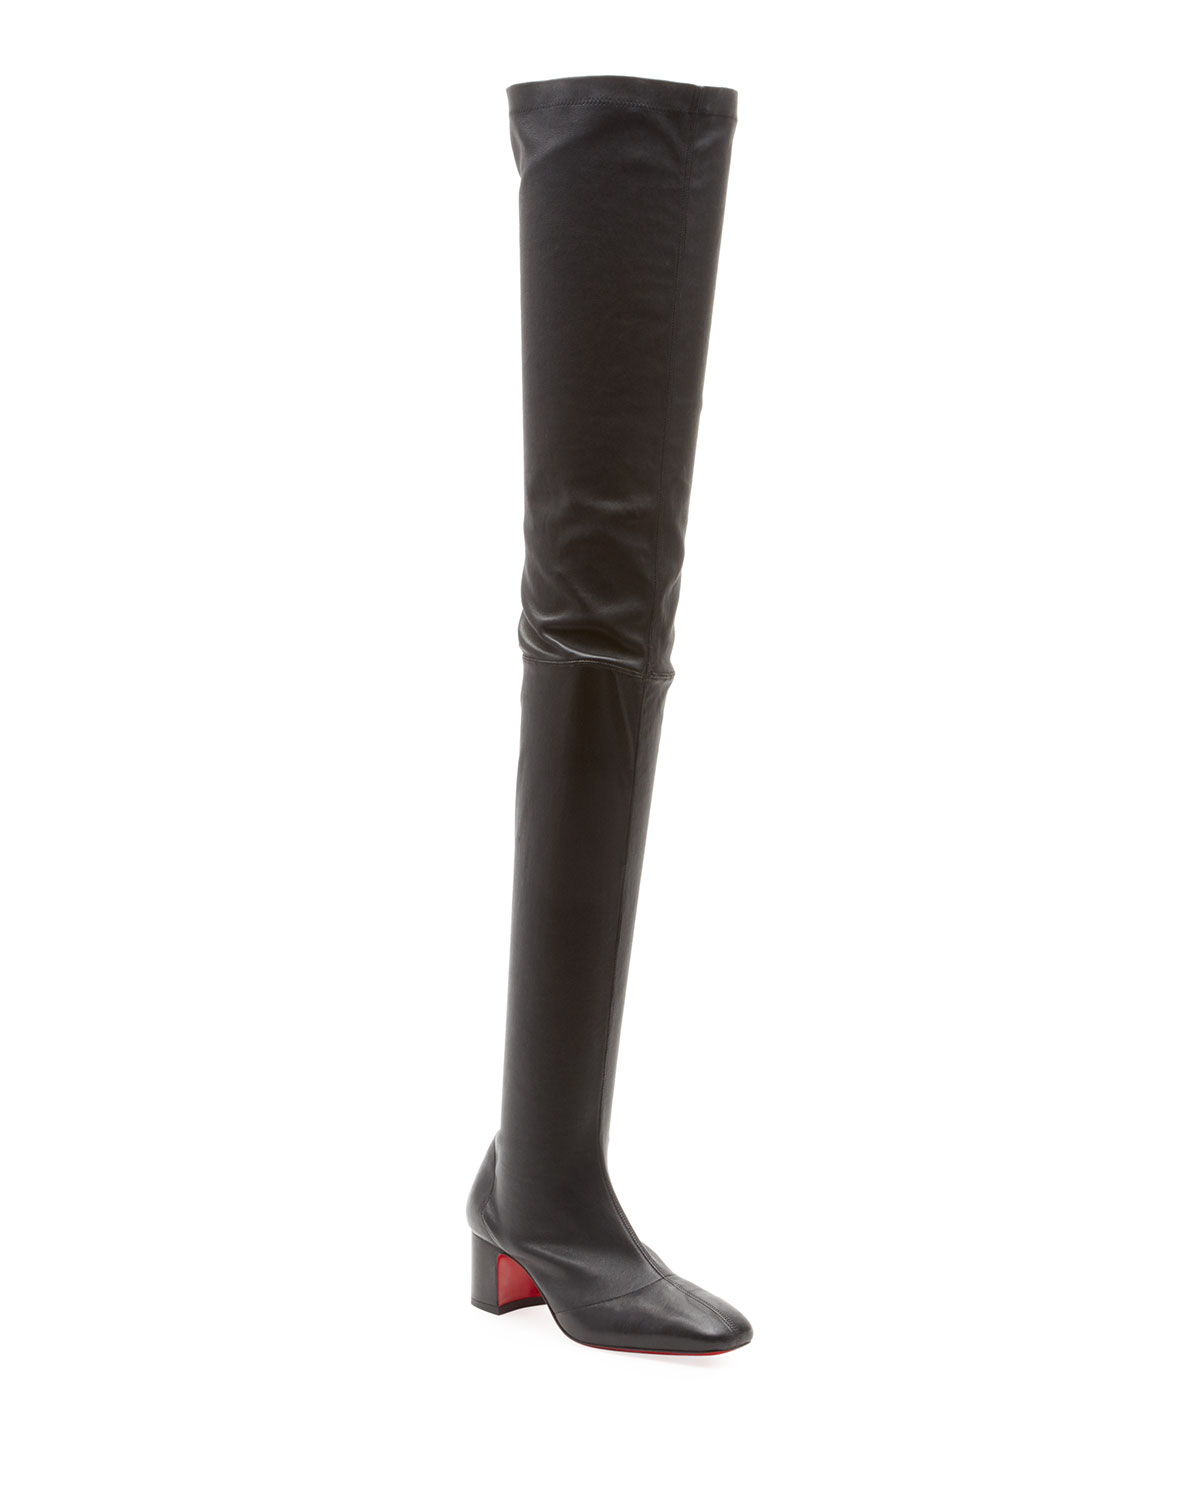 CHRISTIAN LOUBOUTIN SURSAMOTO NAPA RED SOLE OVER-THE-KNEE BOOT